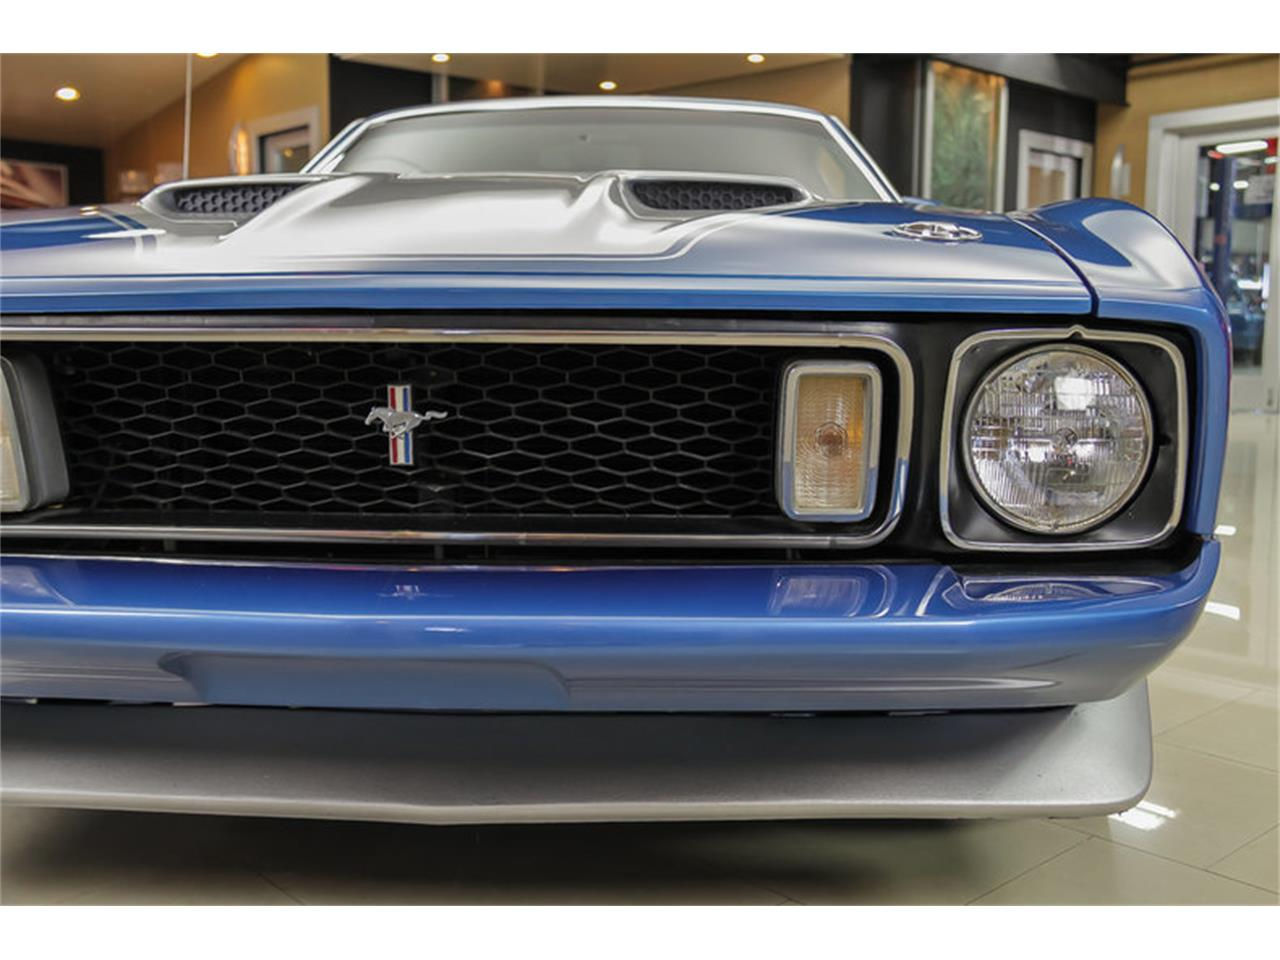 Large Picture of Classic 1973 Ford Mustang Mach 1 Q Code Offered by Vanguard Motor Sales - JDX1